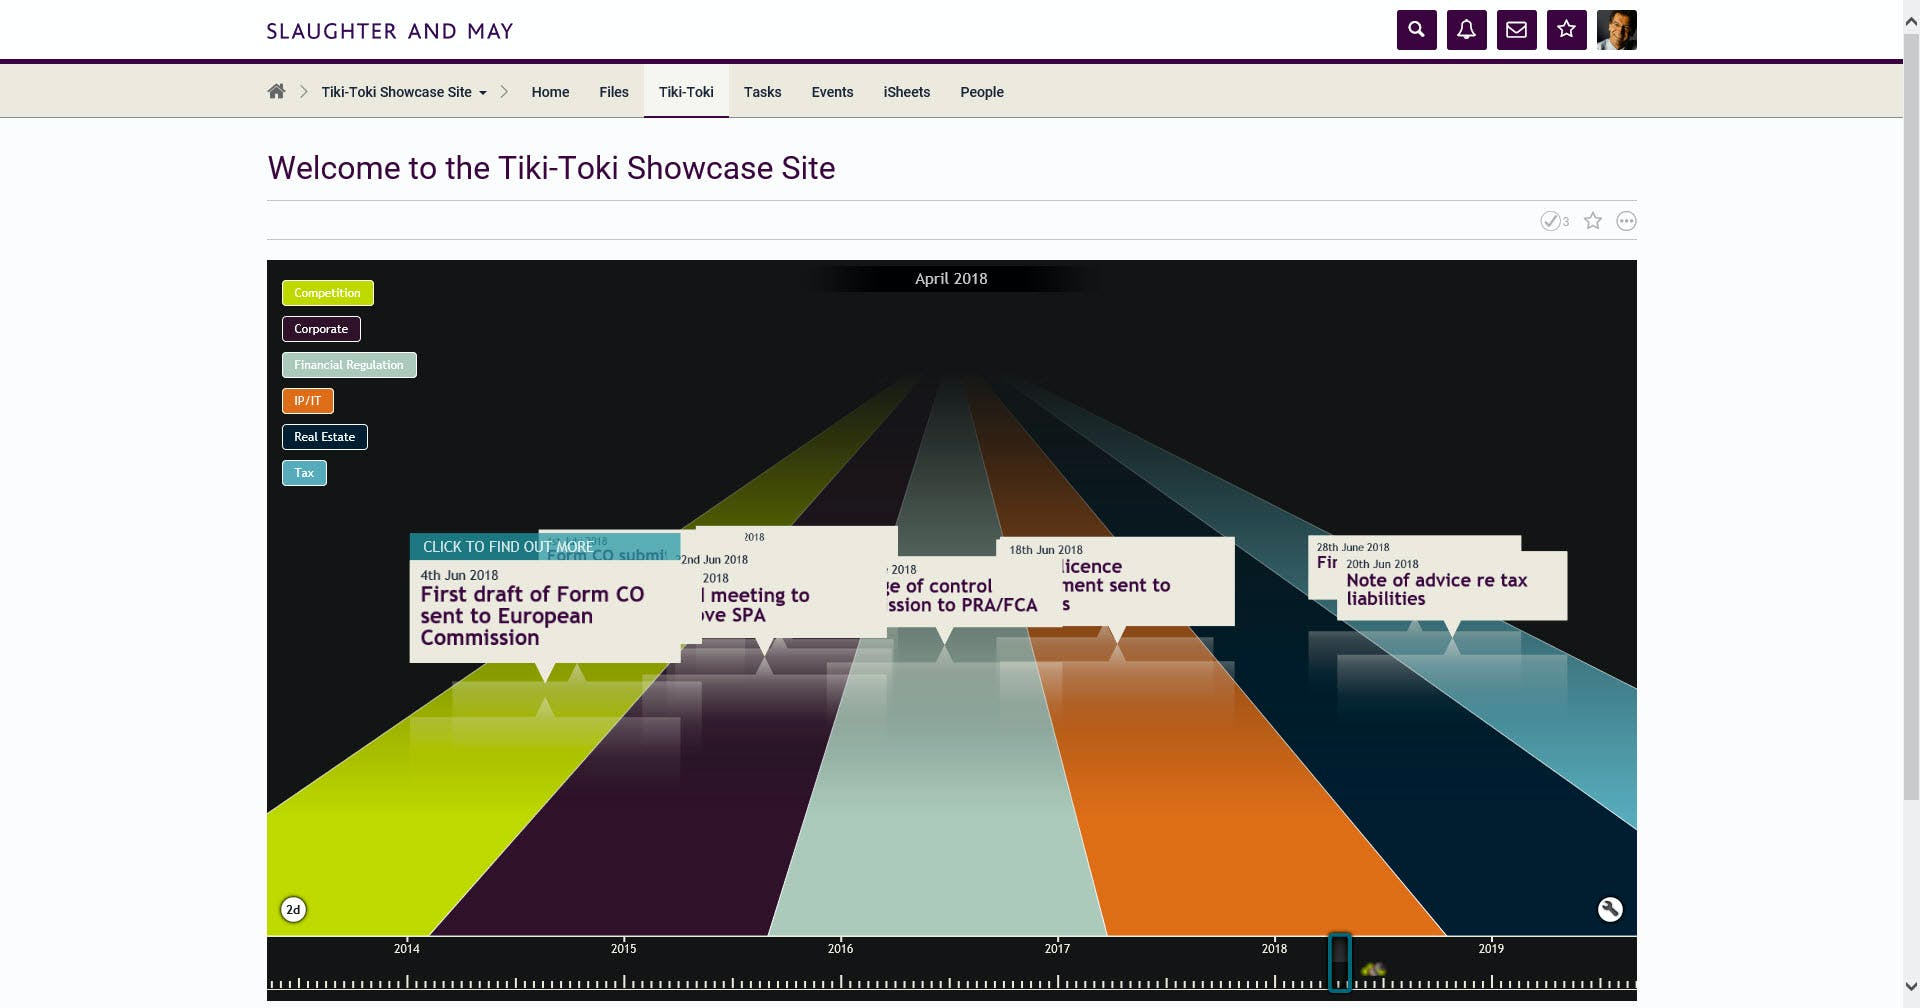 View of landing page that Slaughters and May clients see when using the tiki-toki app